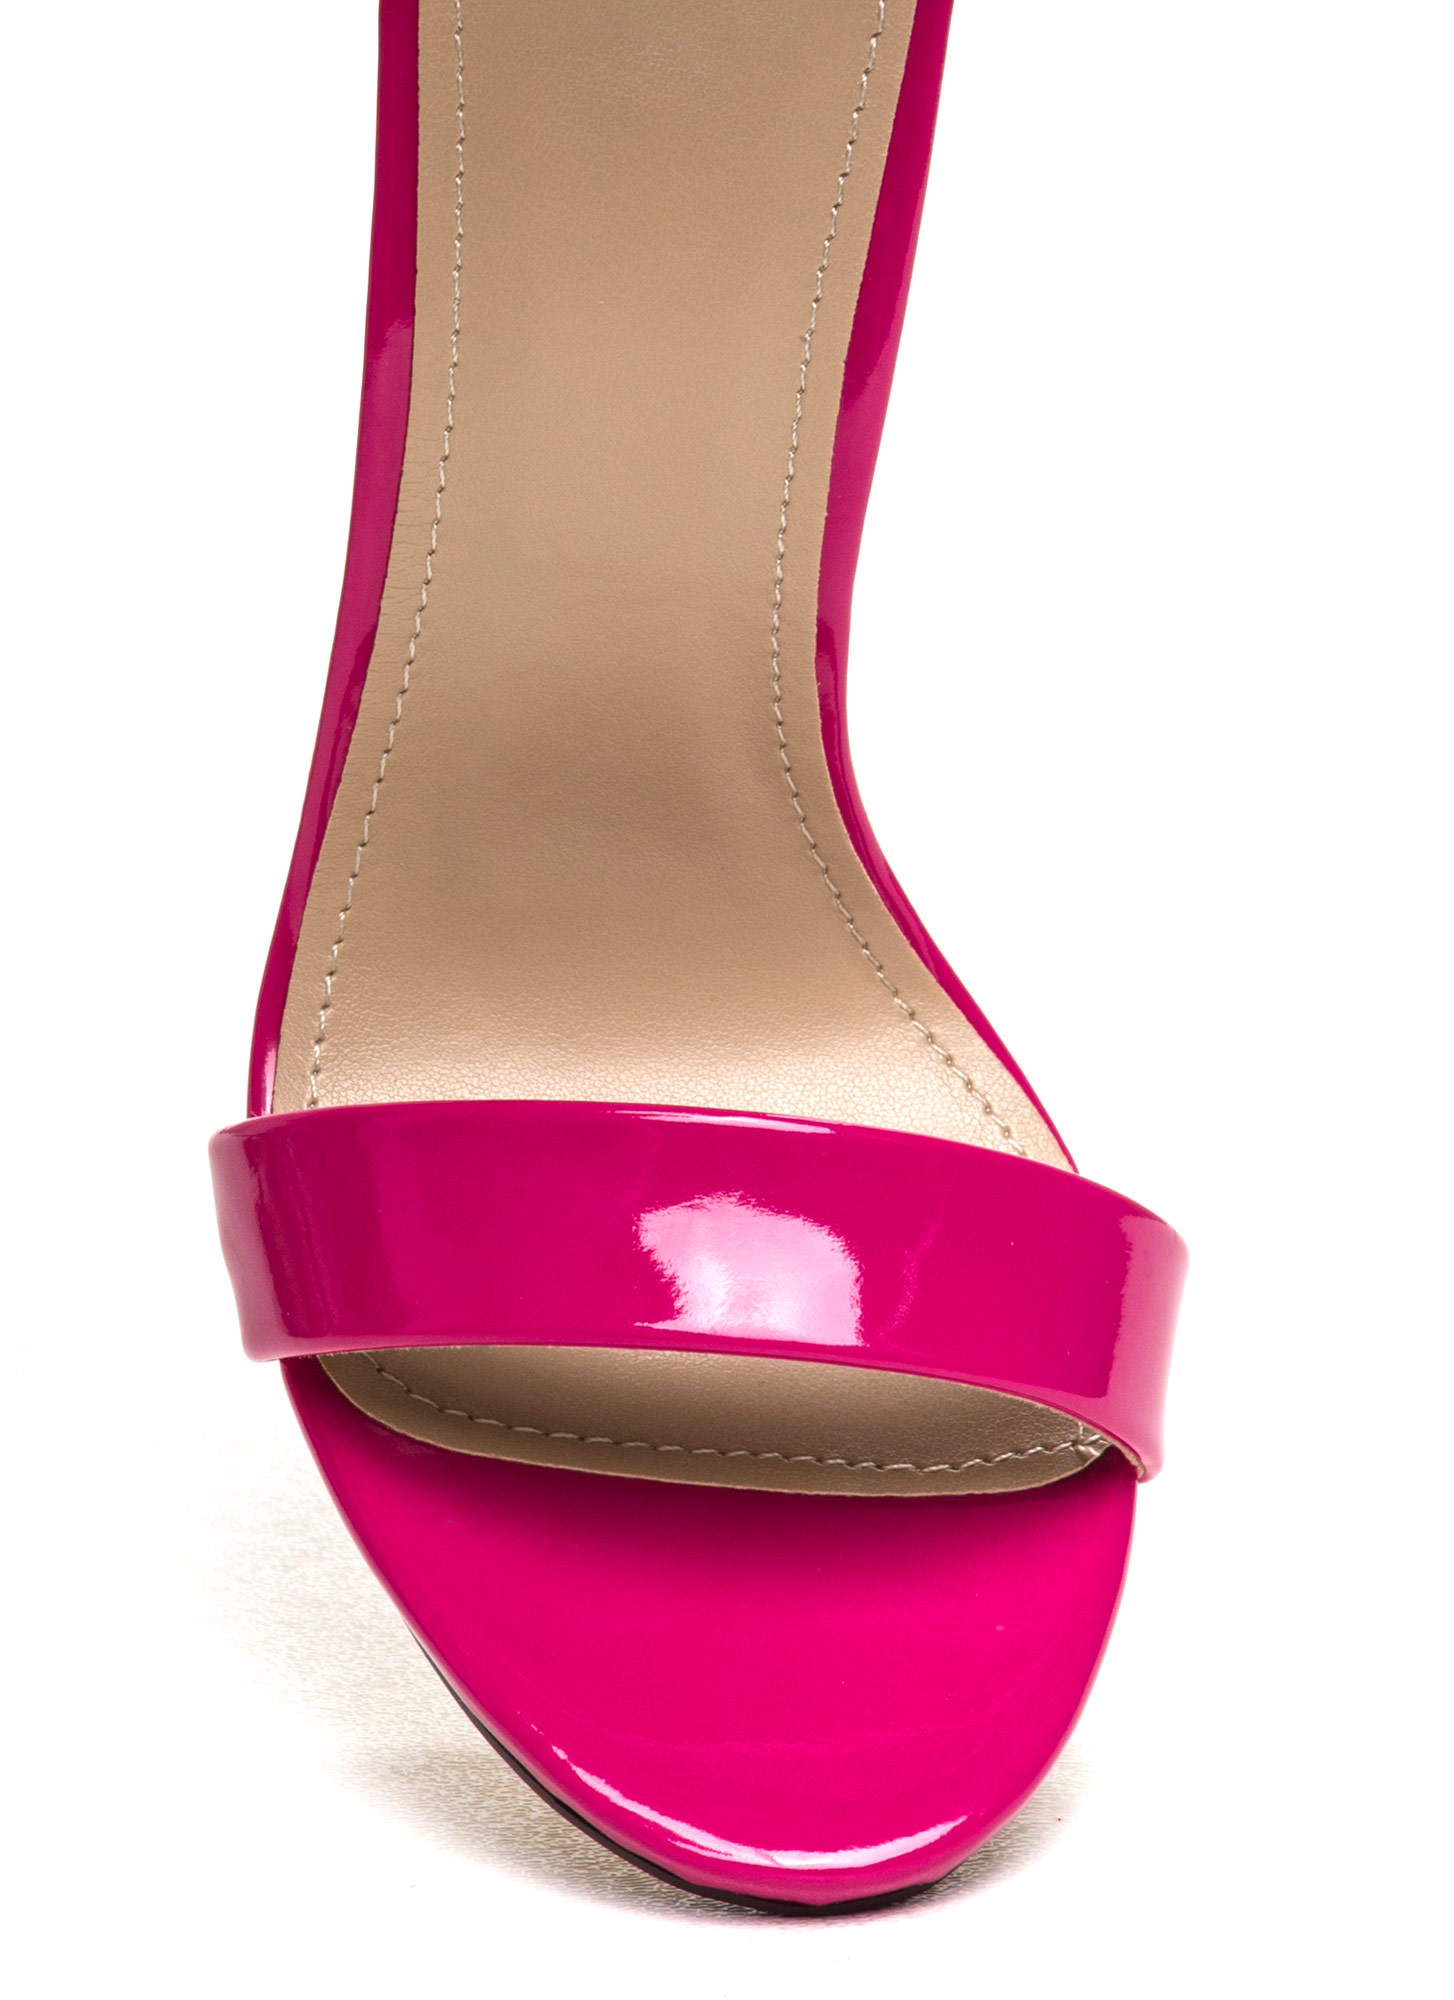 Strapped On Faux Patent Heels HOTPINK (Final Sale)